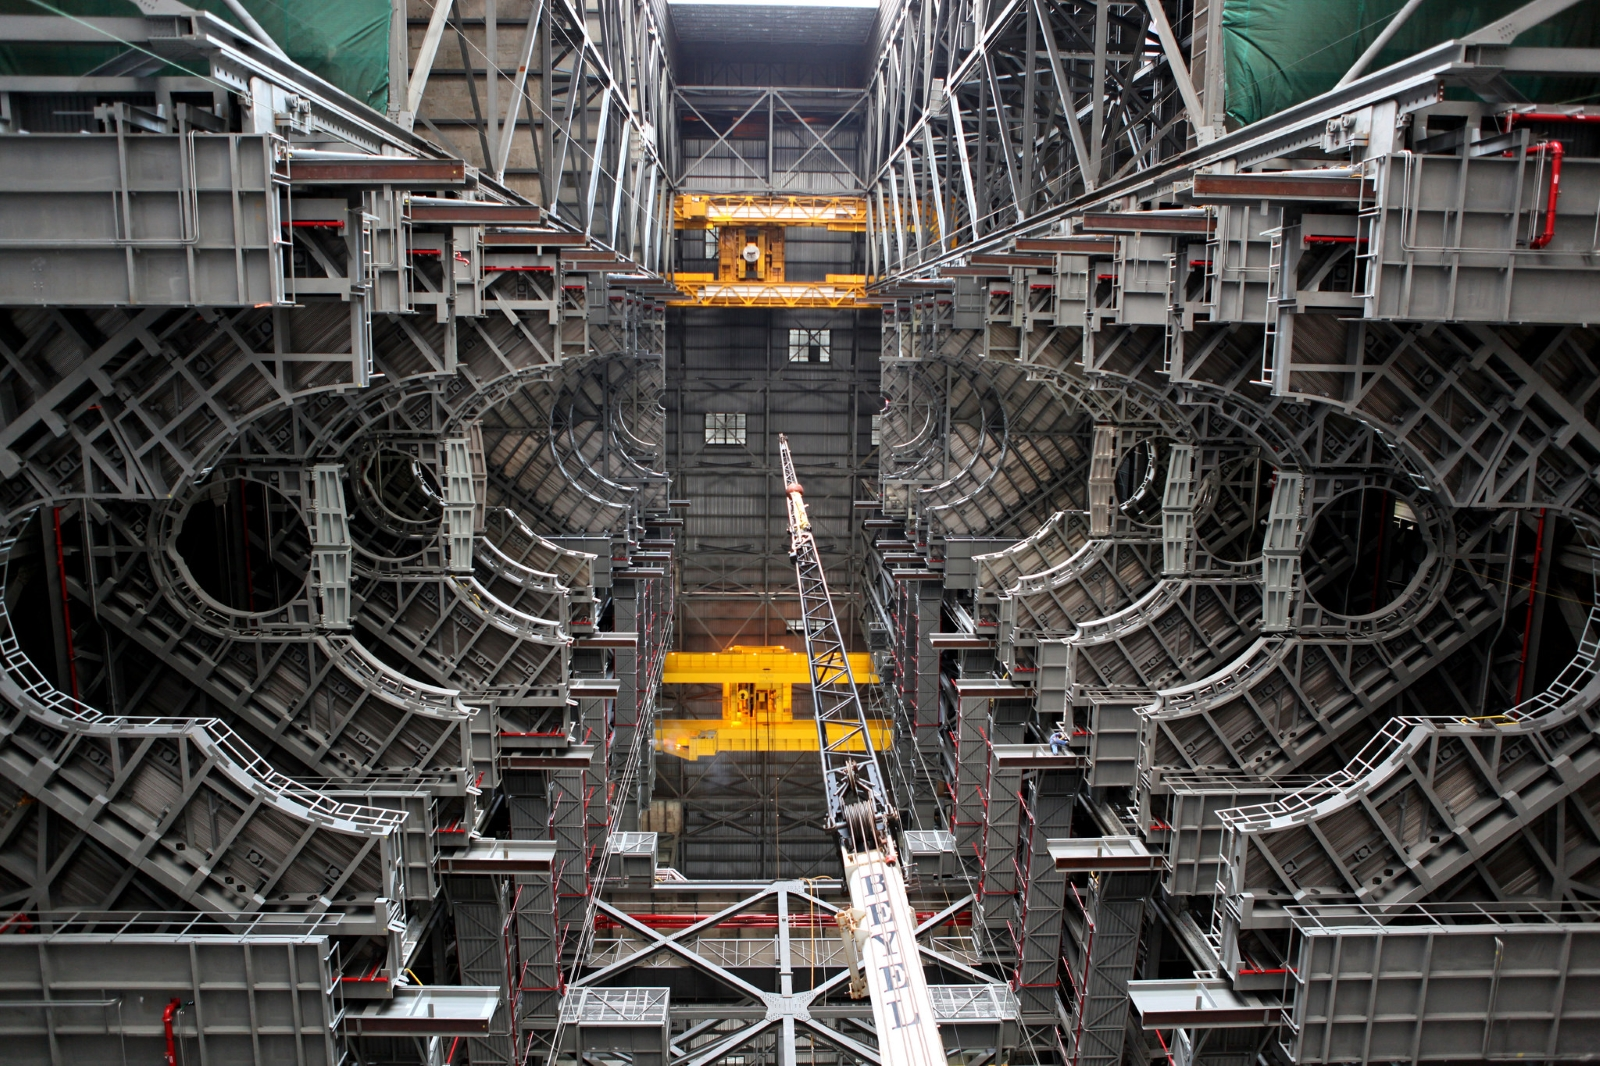 Orion update: Vehicle Assembly Building platform A-north installation